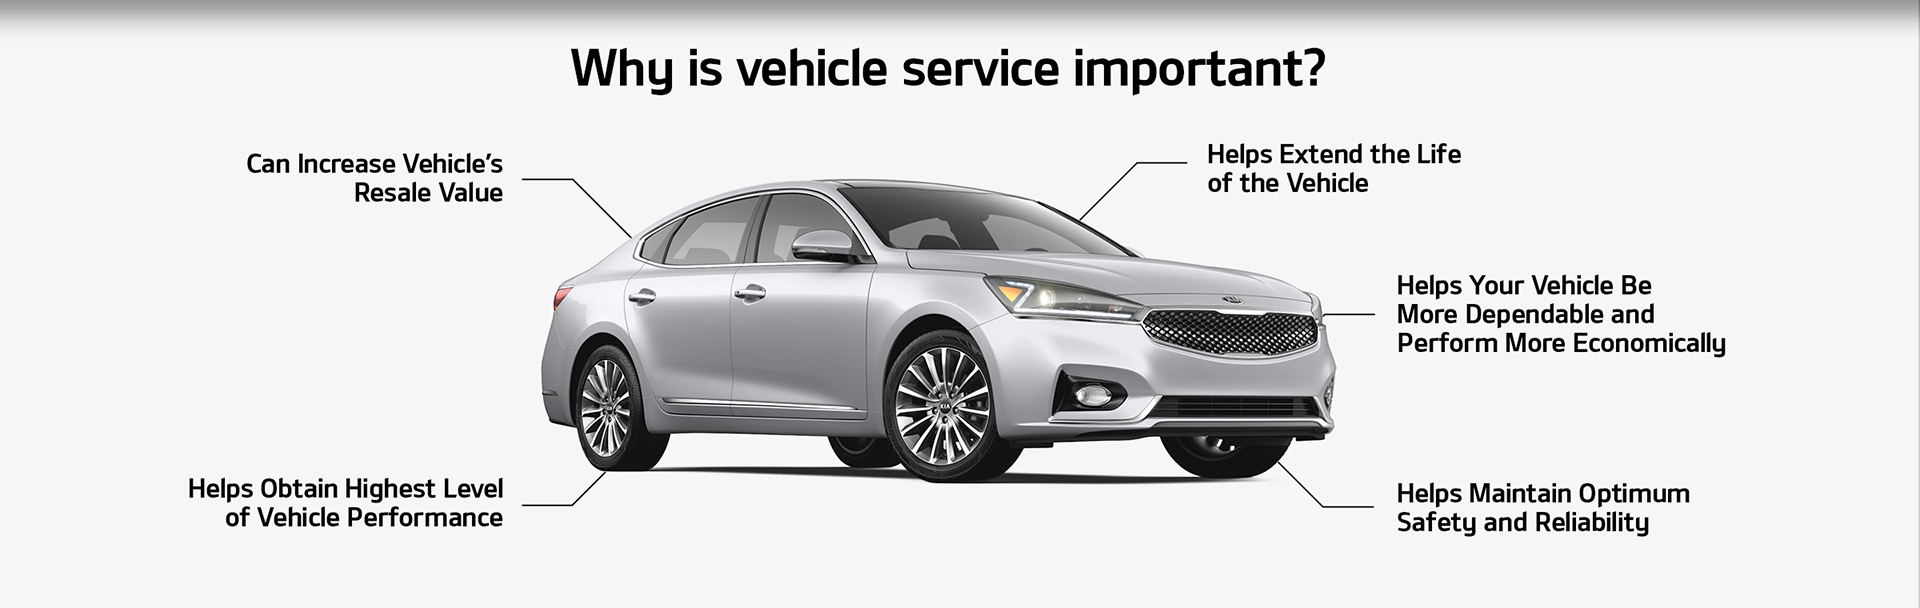 vehicle service is important